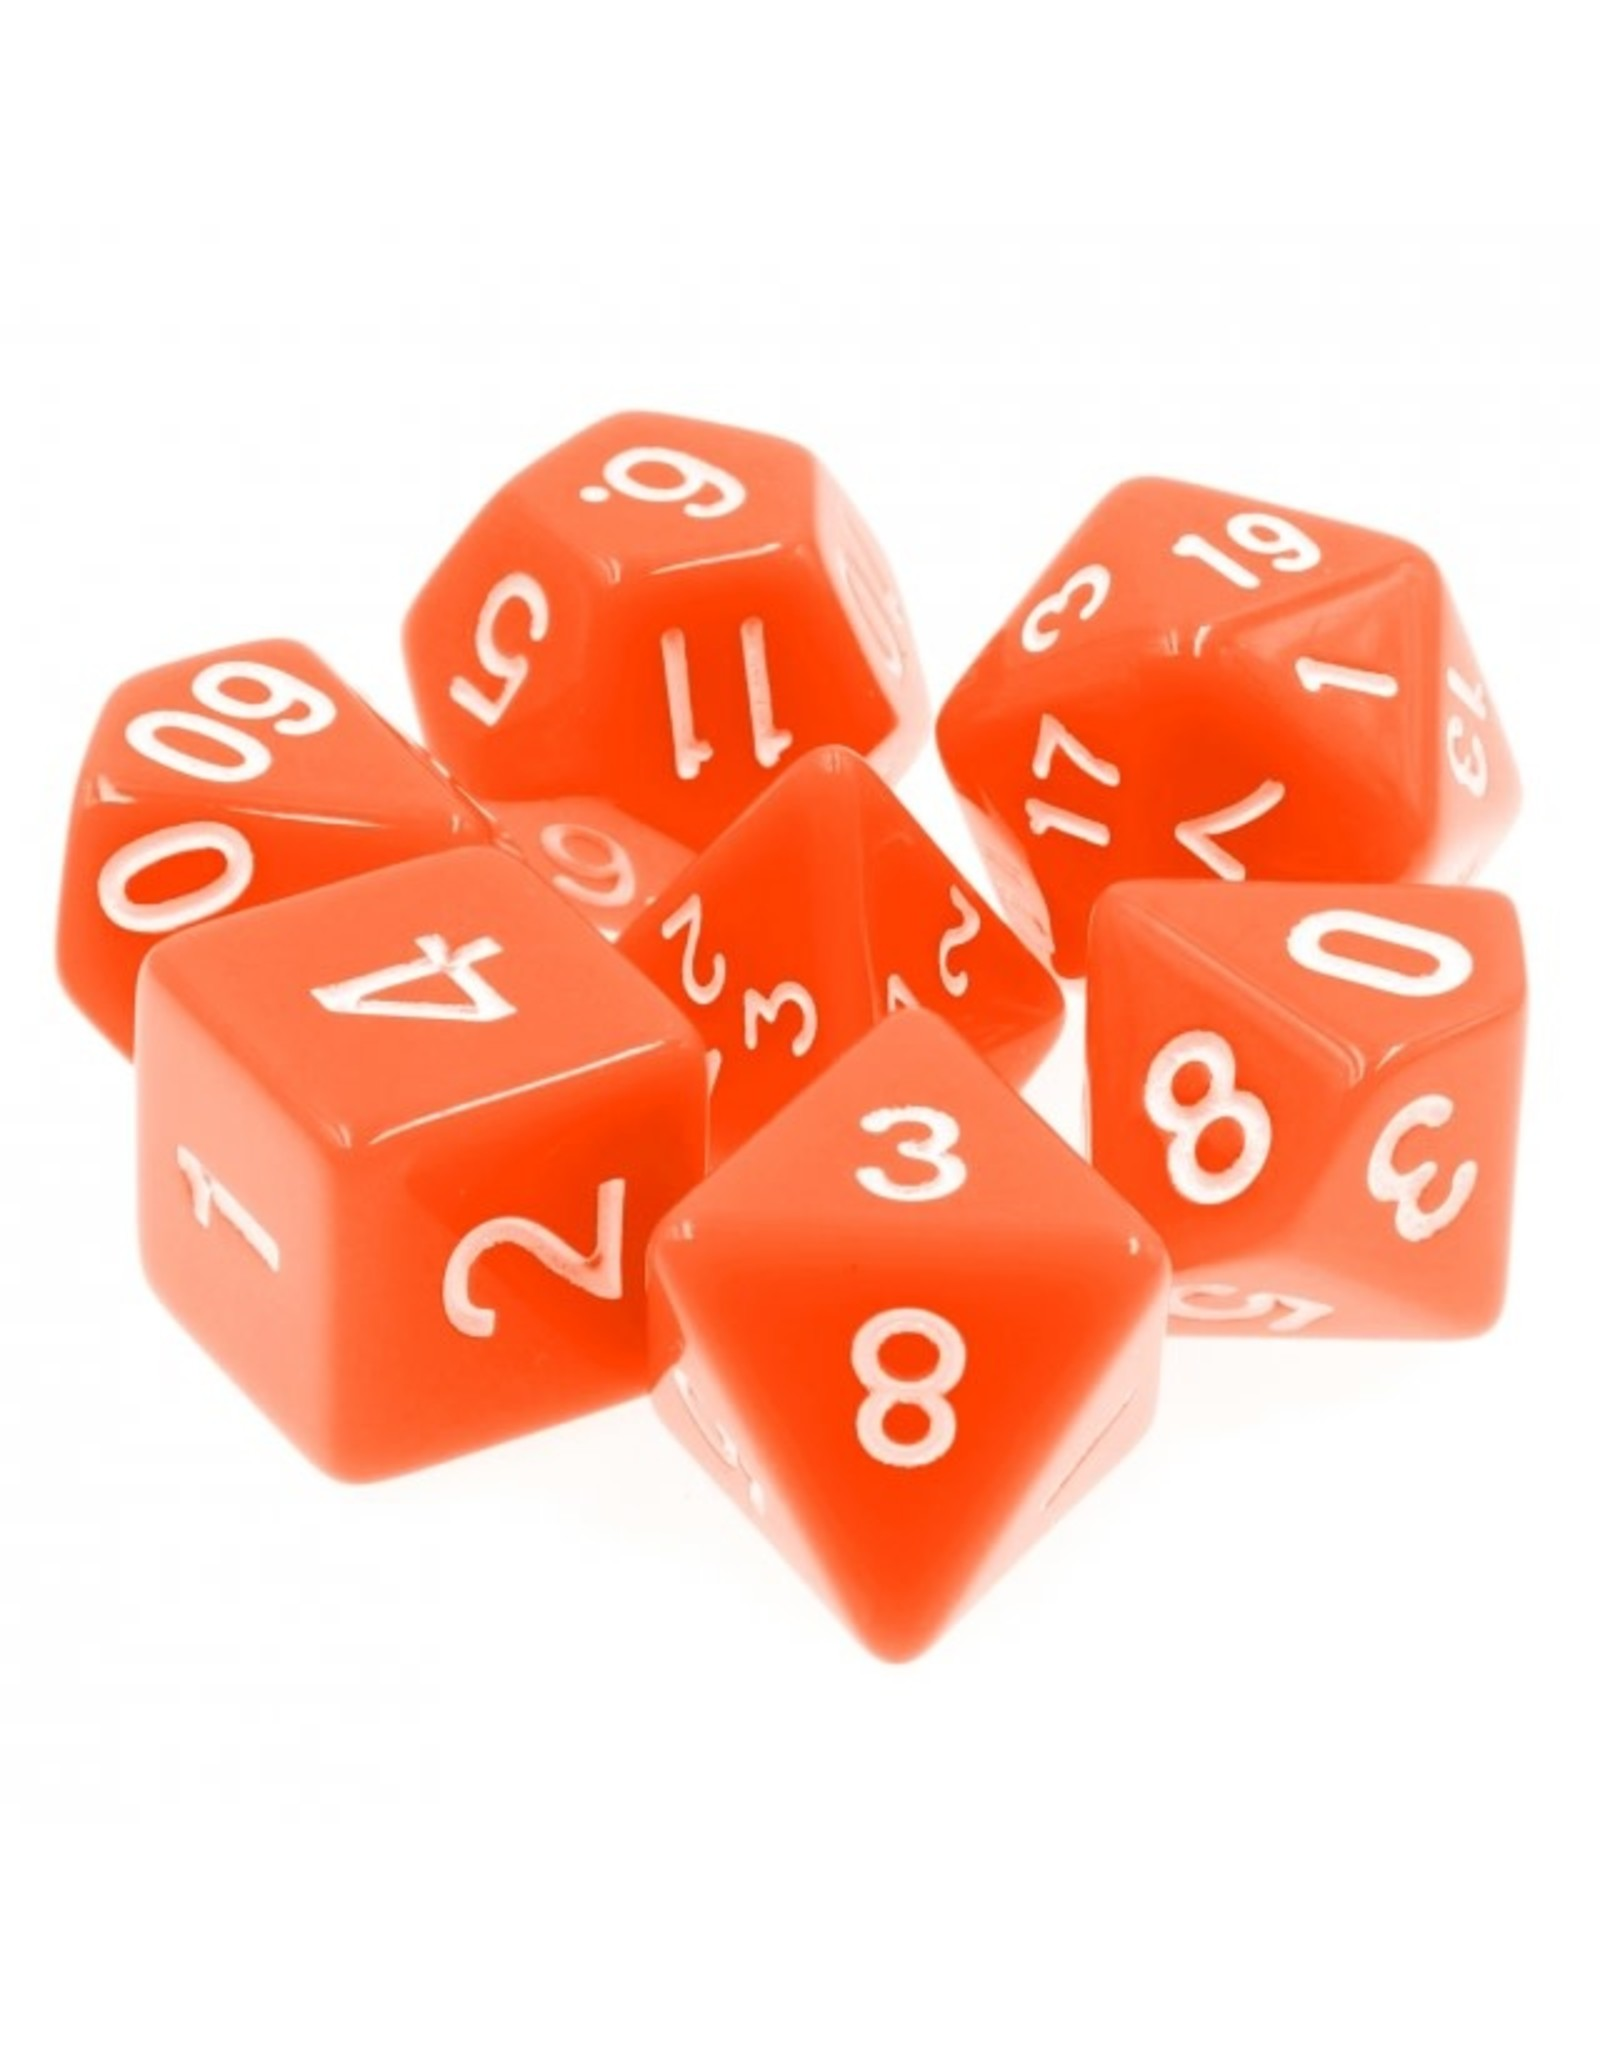 HD Dice Dice: 7-Set Opaque Orange with White Numbers (HD)